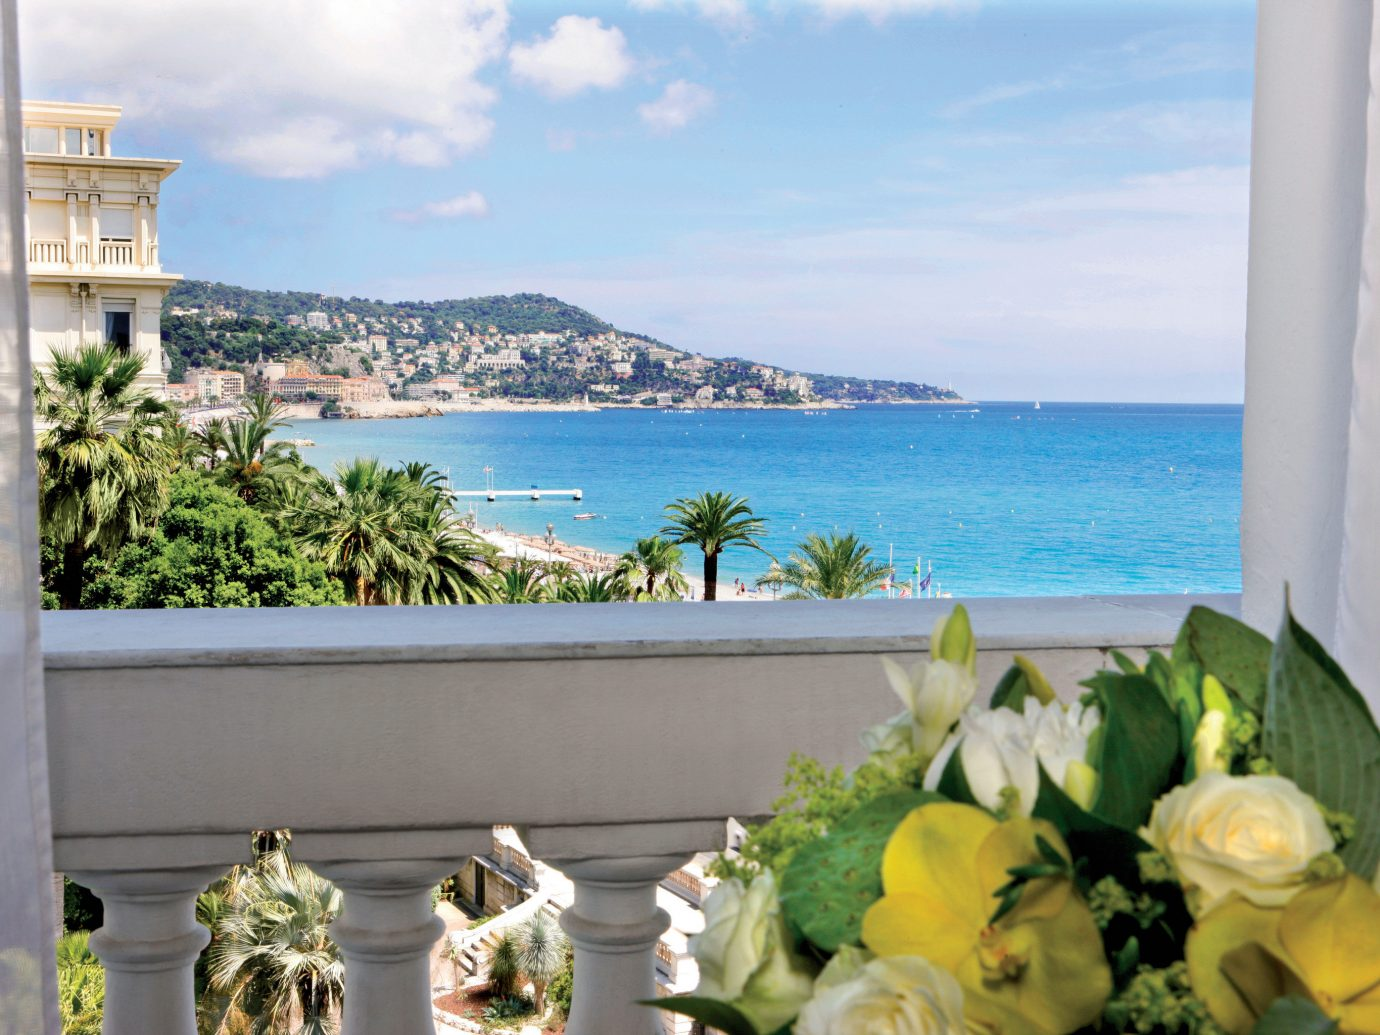 Hotels water property vacation flower estate Villa overlooking plant